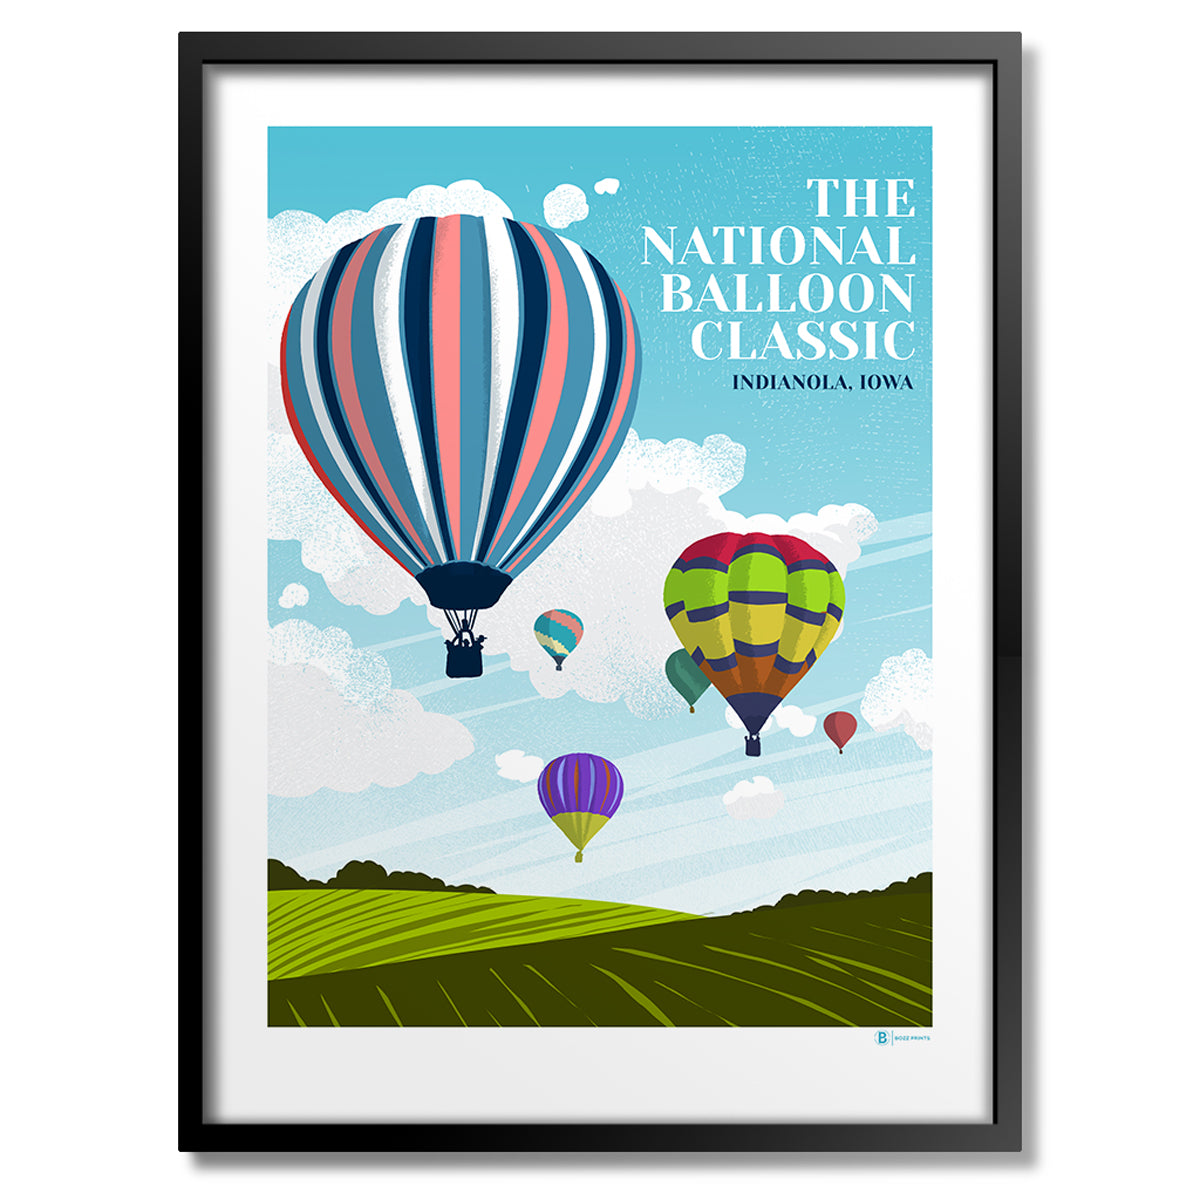 The National Balloon Classic